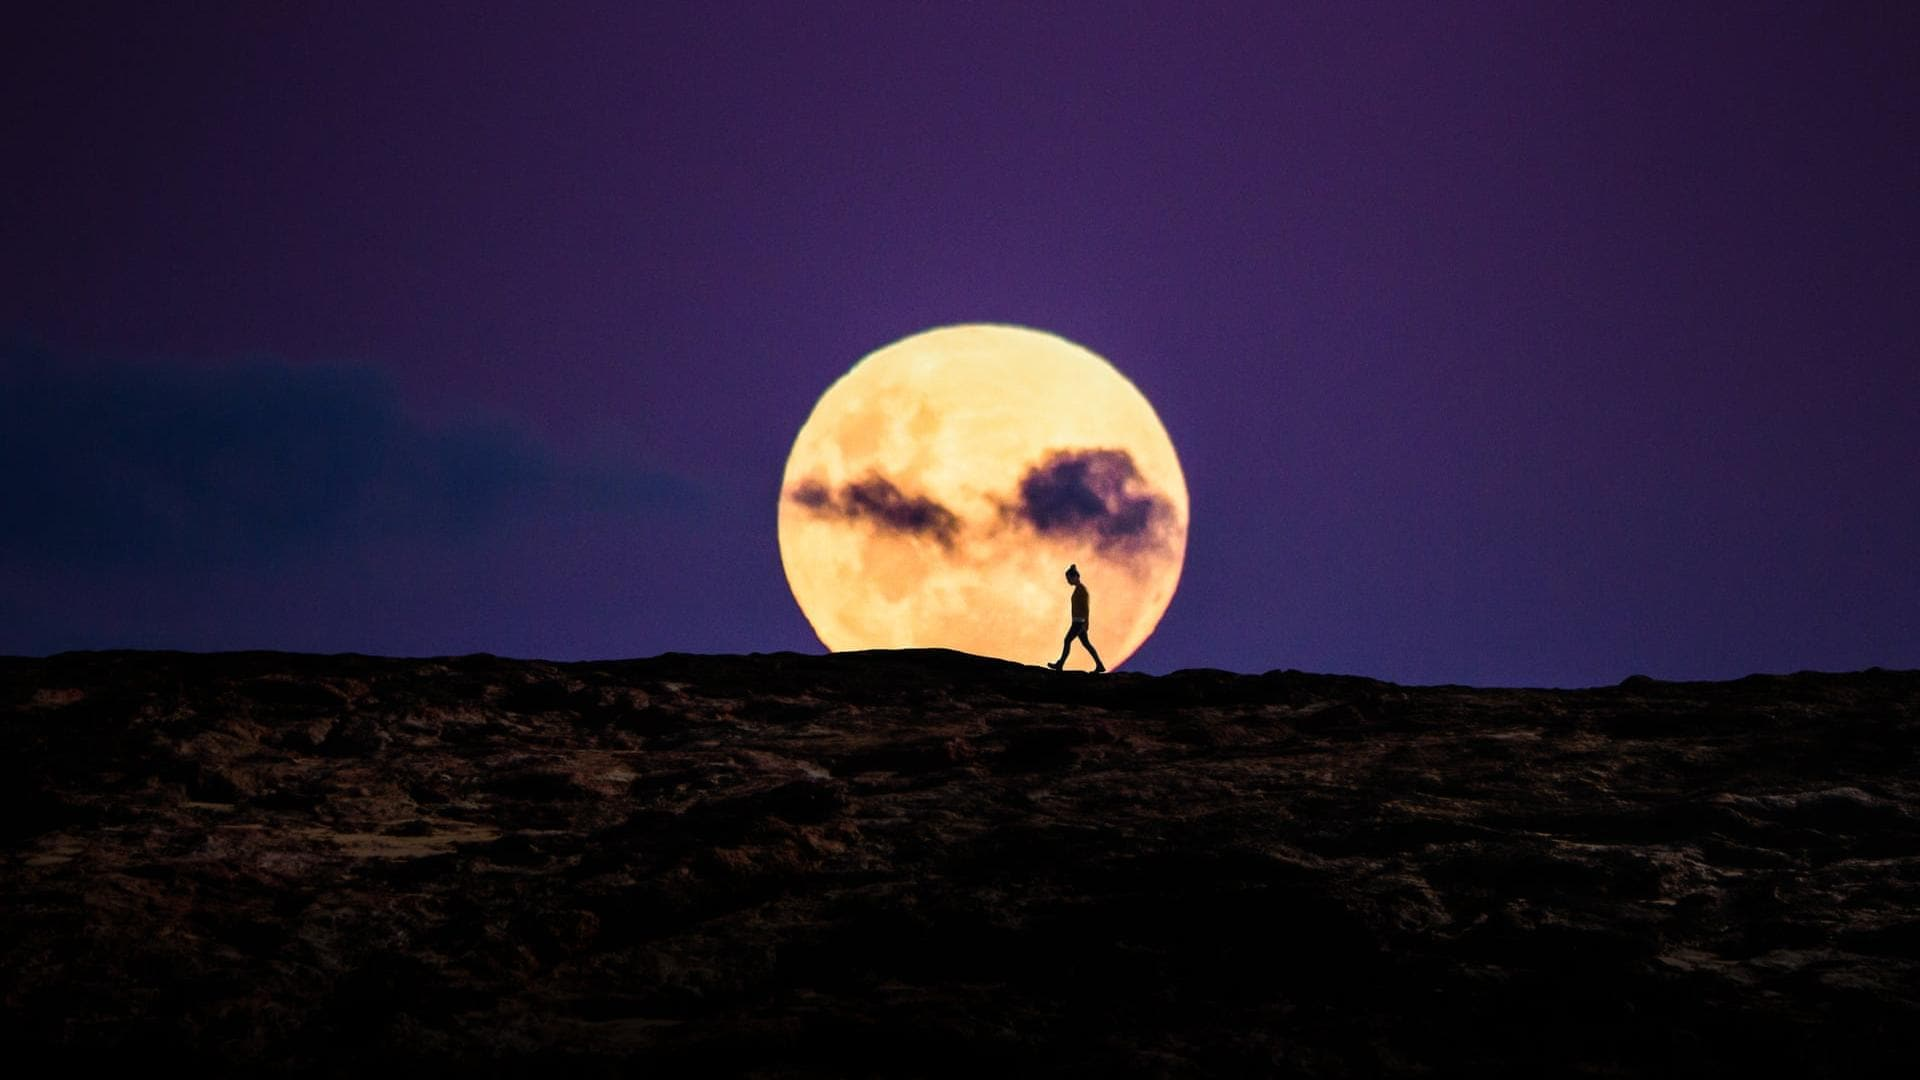 Super Worm Moon is 2019's third, final supermoon on 21 March: When, where to watch